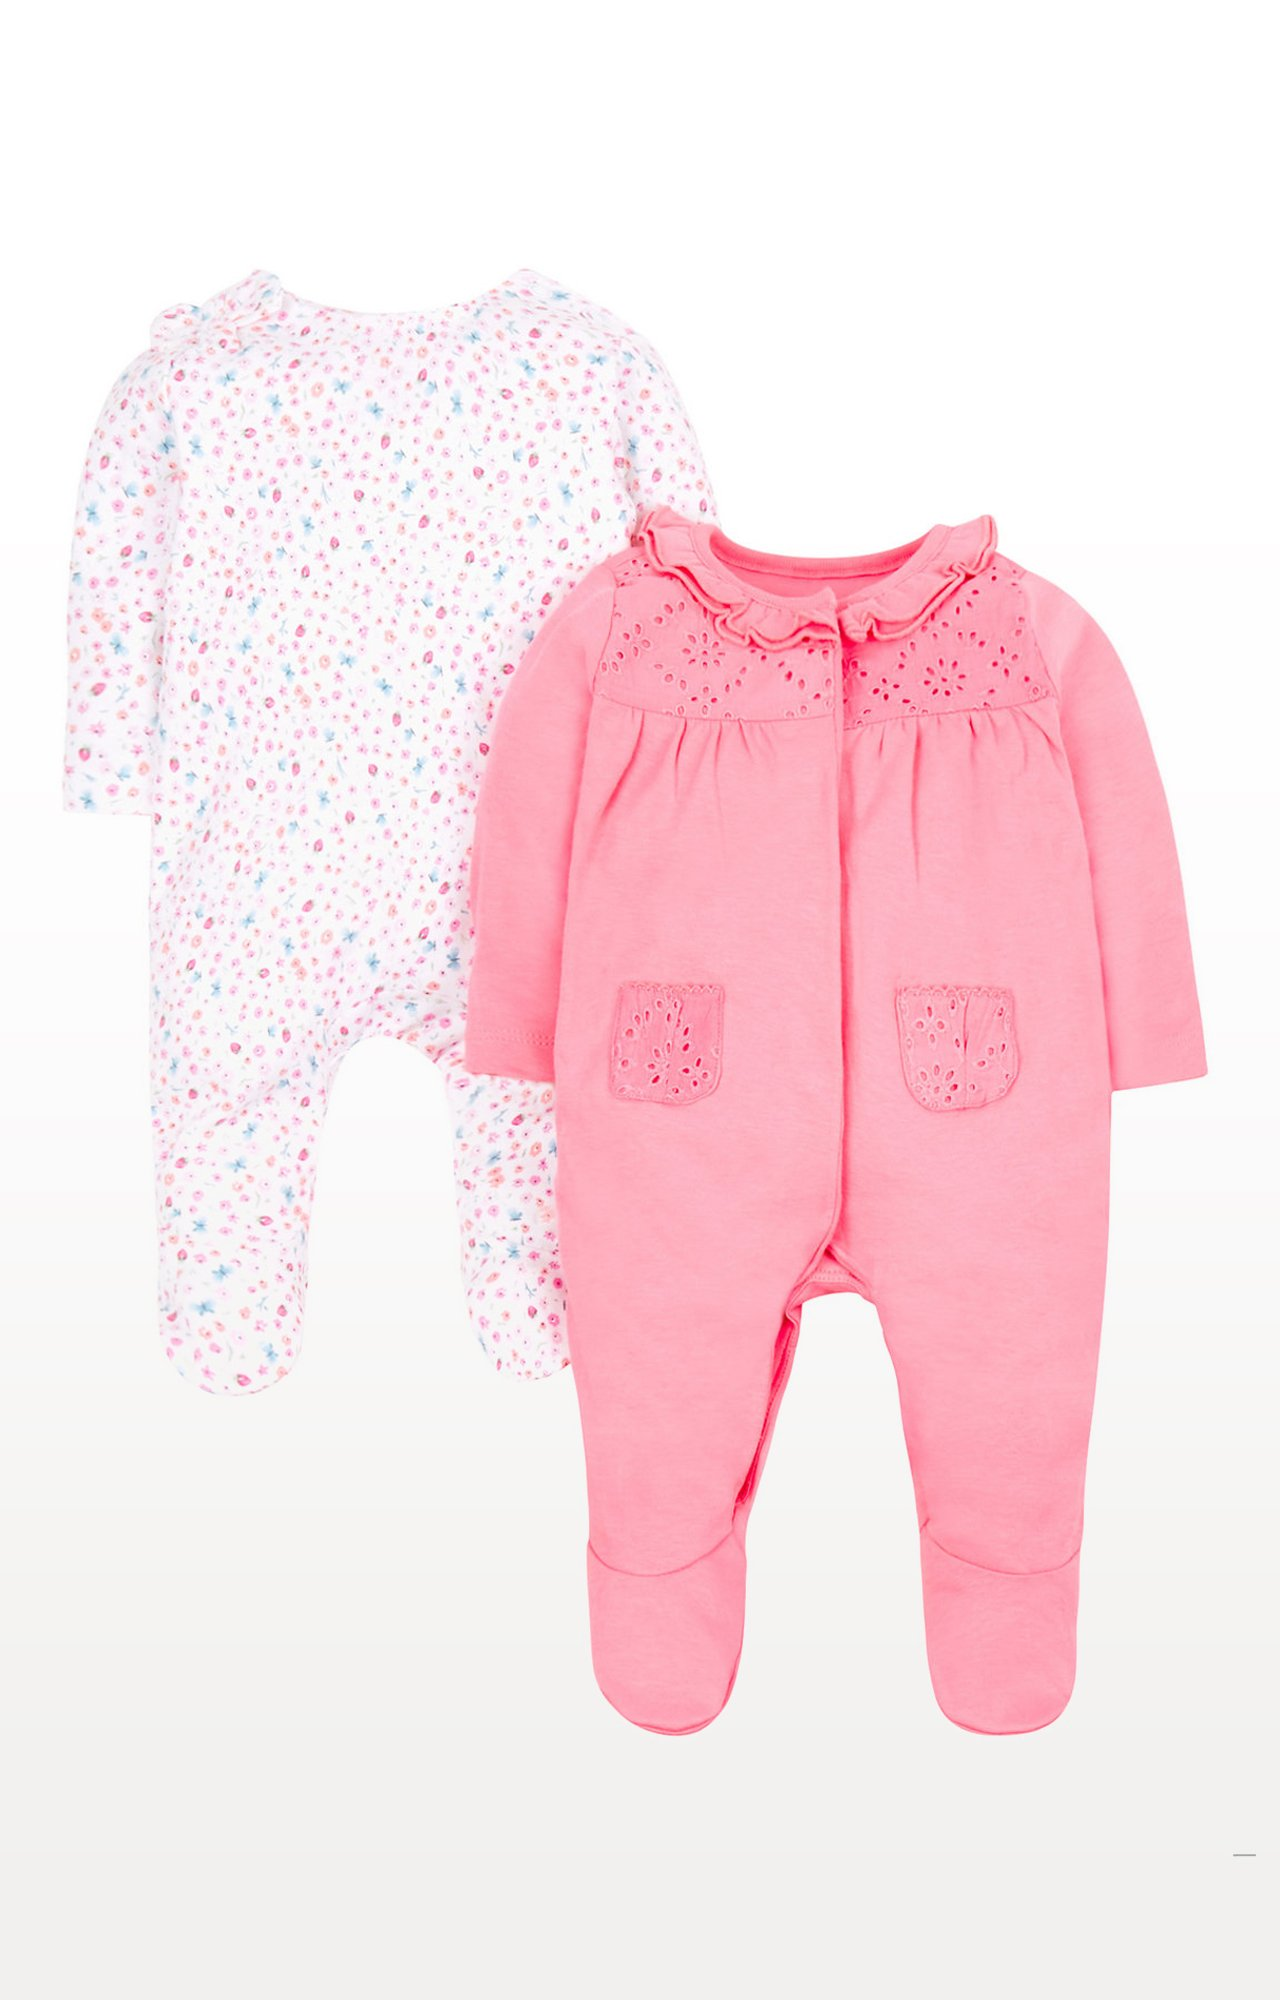 Mothercare   White and Pink Printed Romper - Pack of 2